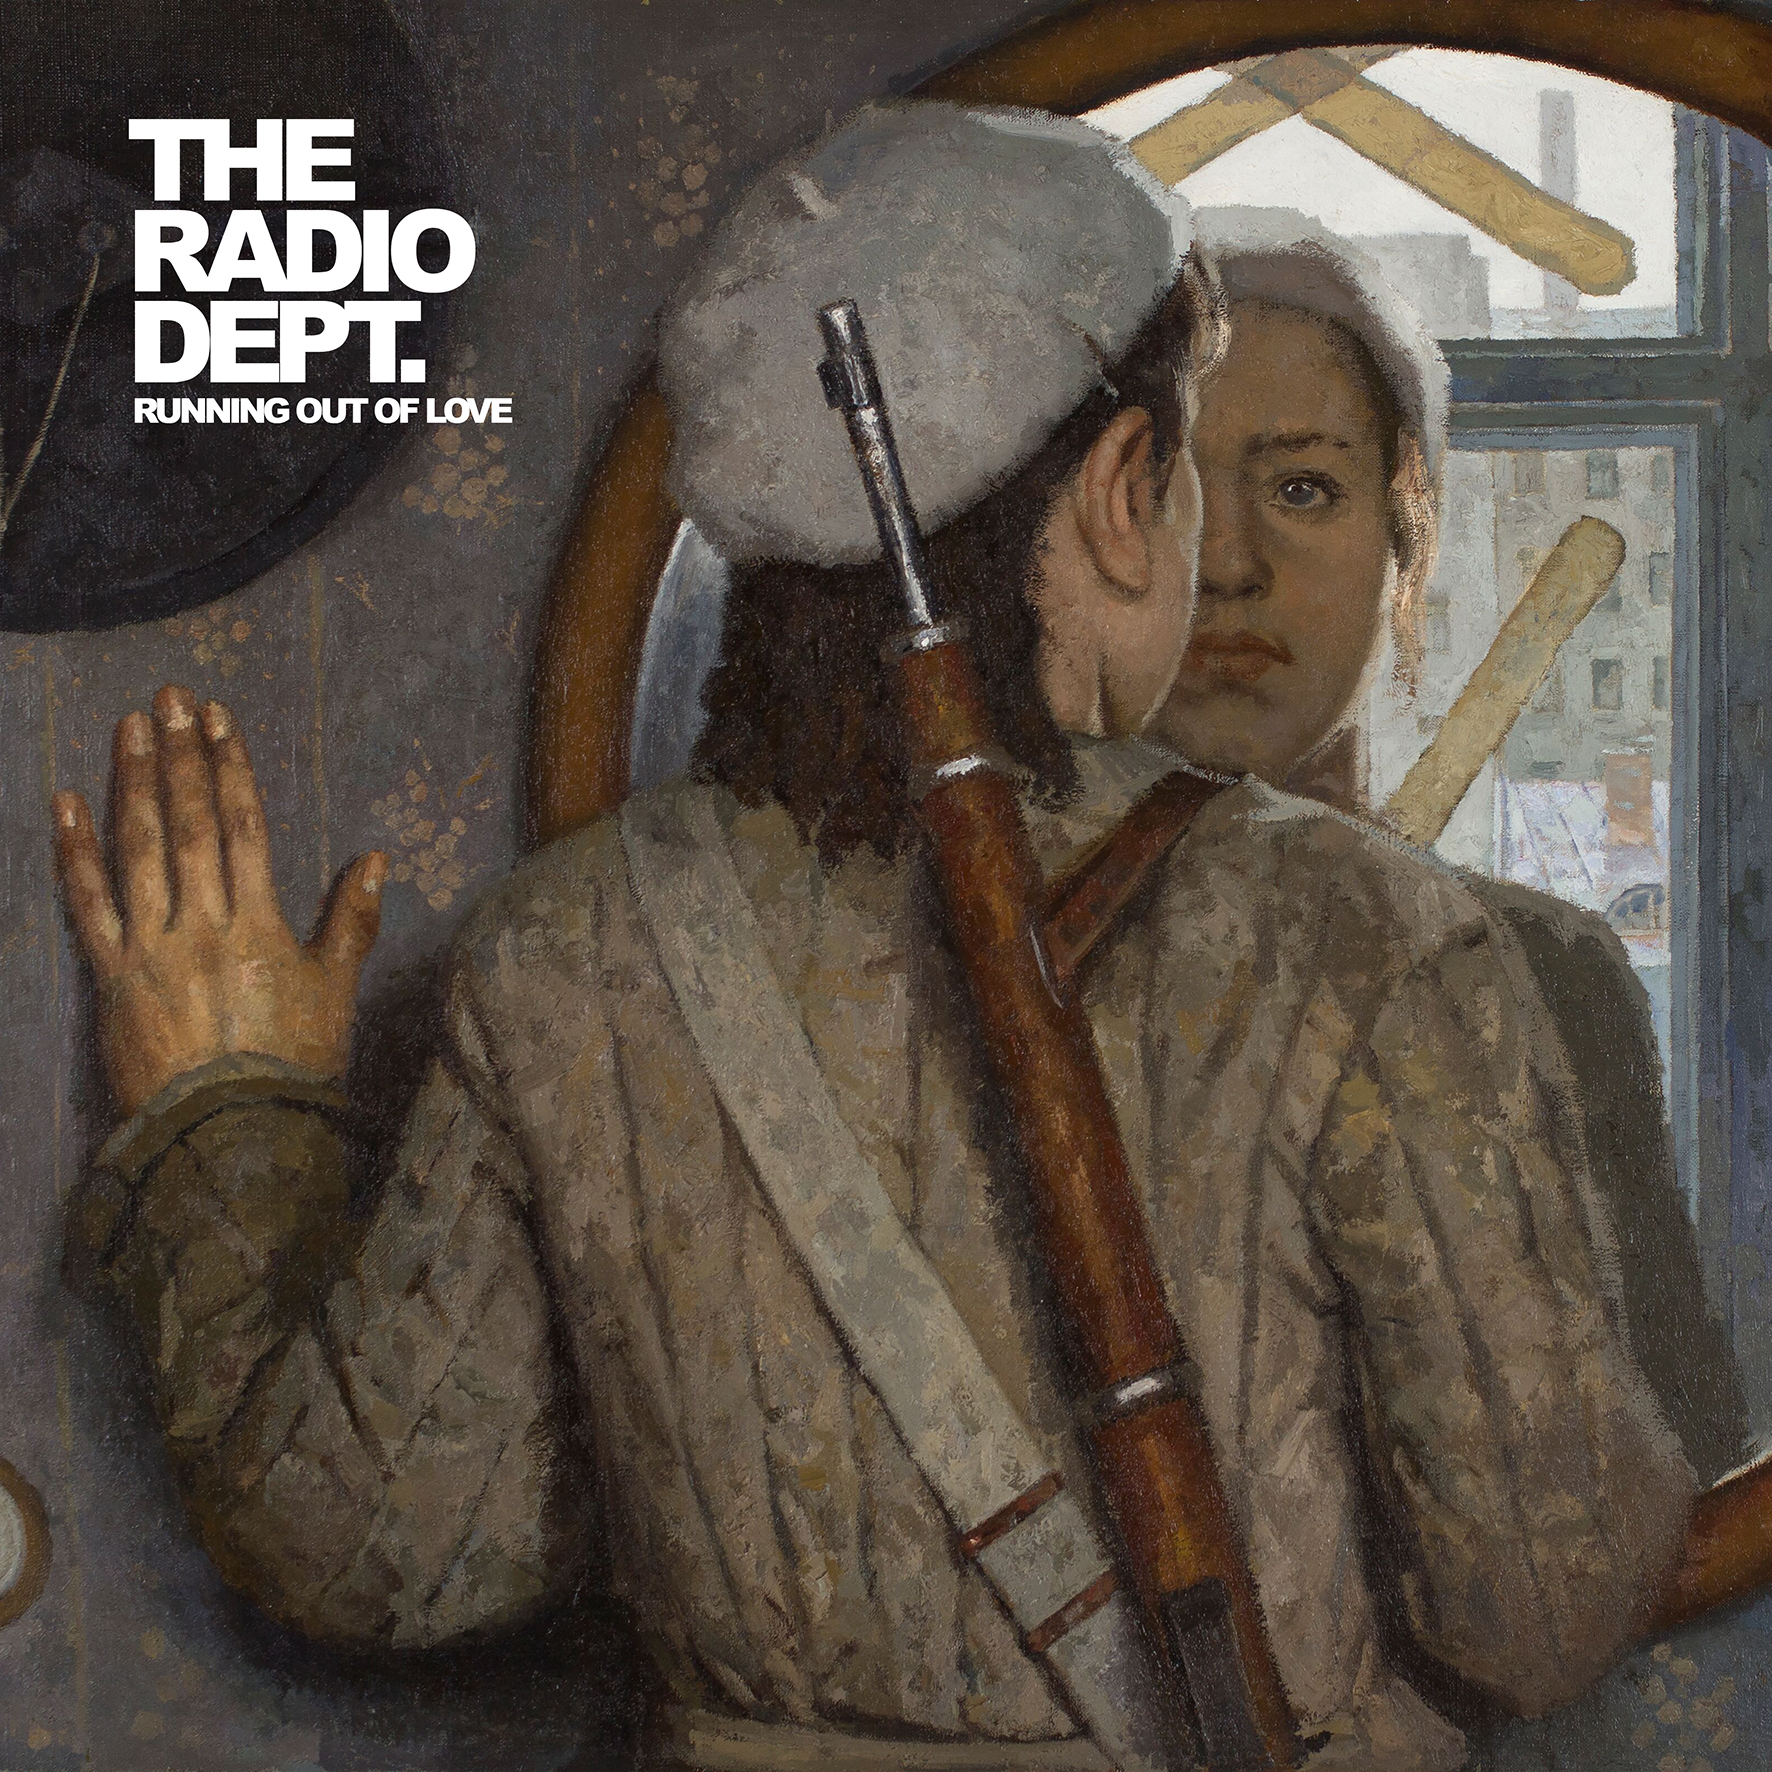 The Radio Dept. Running Out Of Love